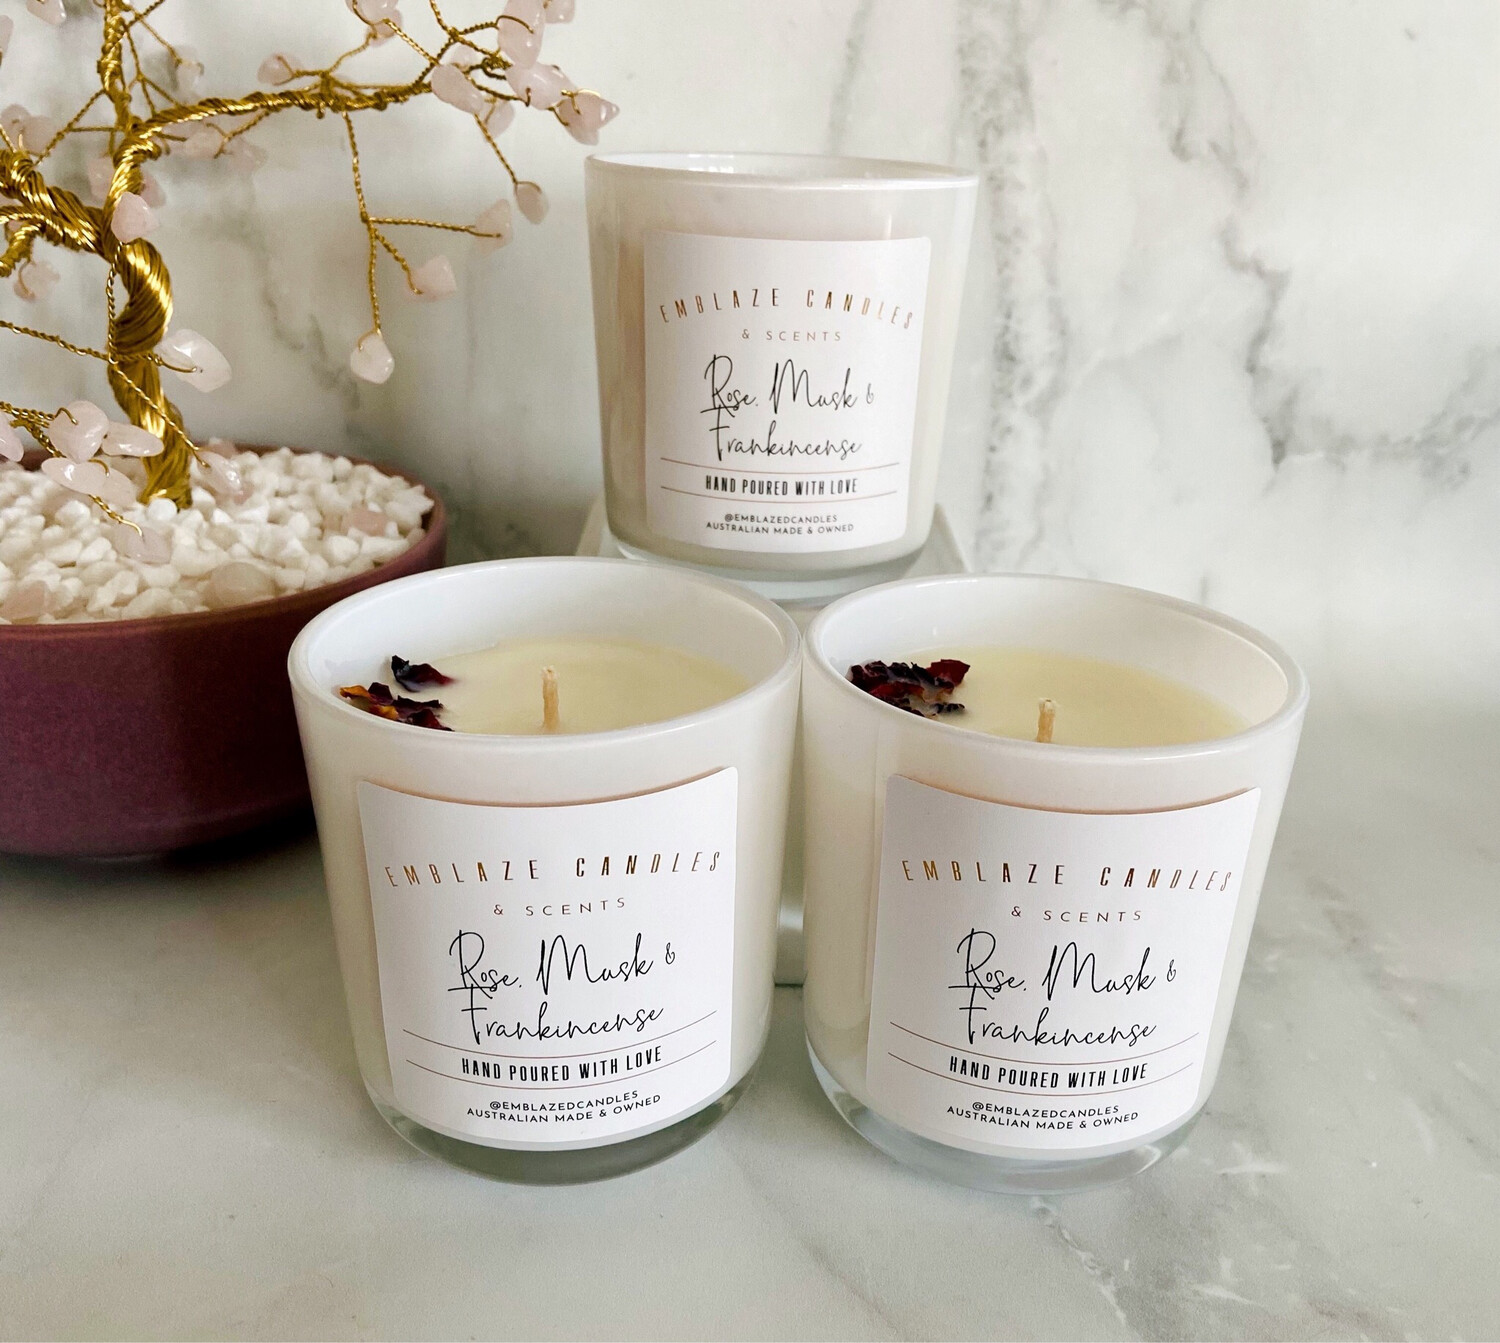 Rose, Musk and Frankincense